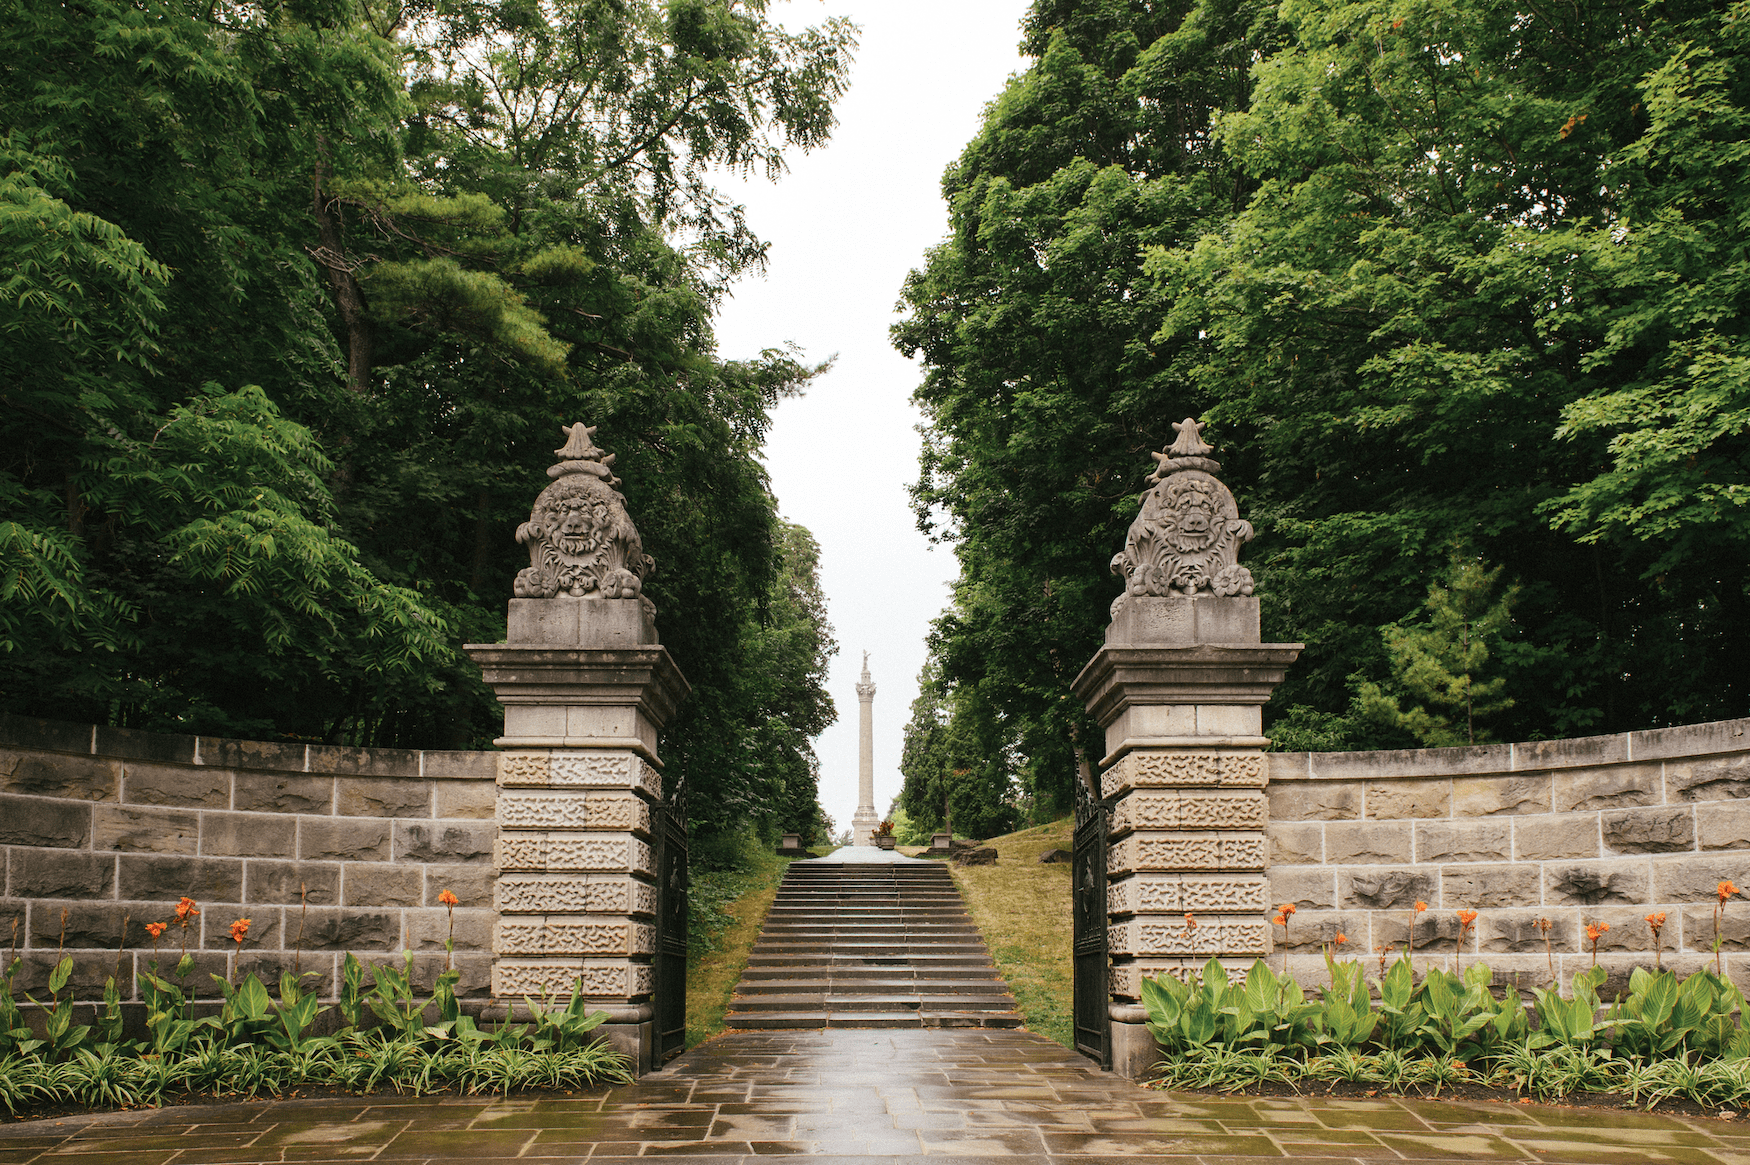 Brock's Monument in Queenston Heights